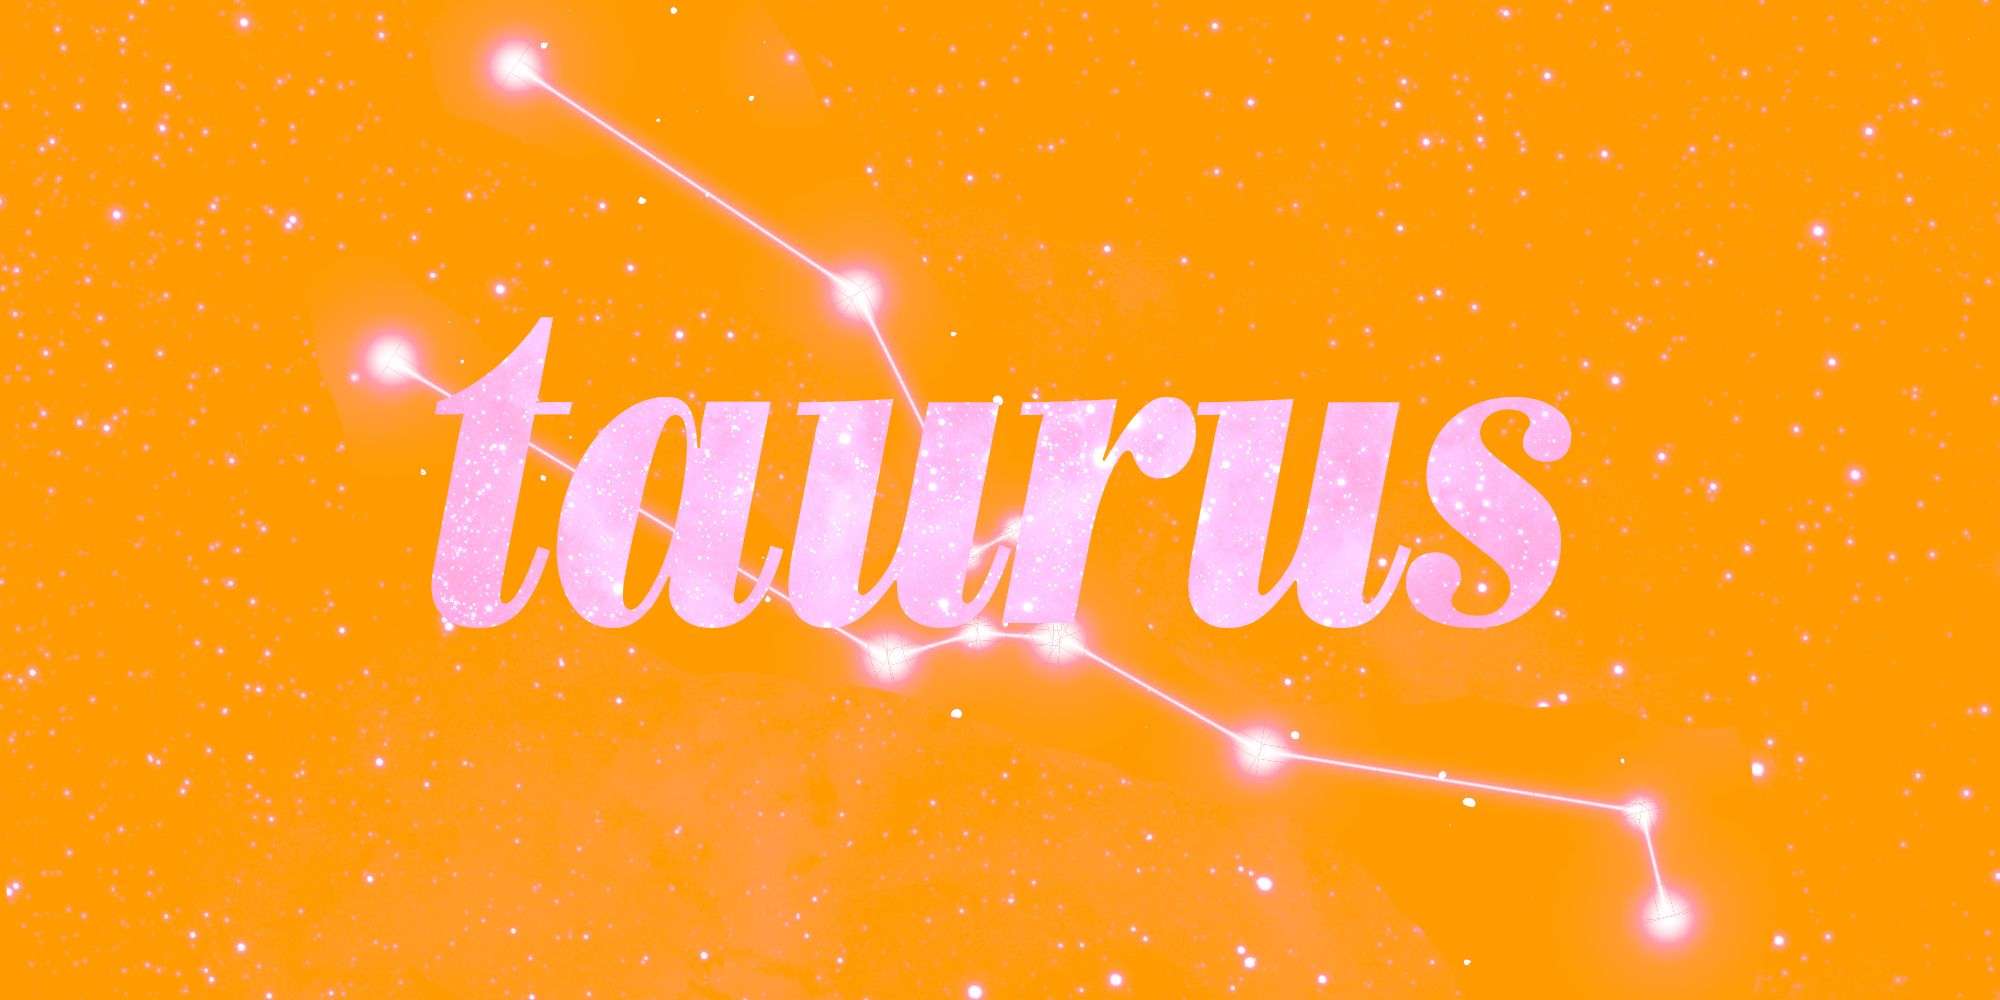 Taurus horoscopes.